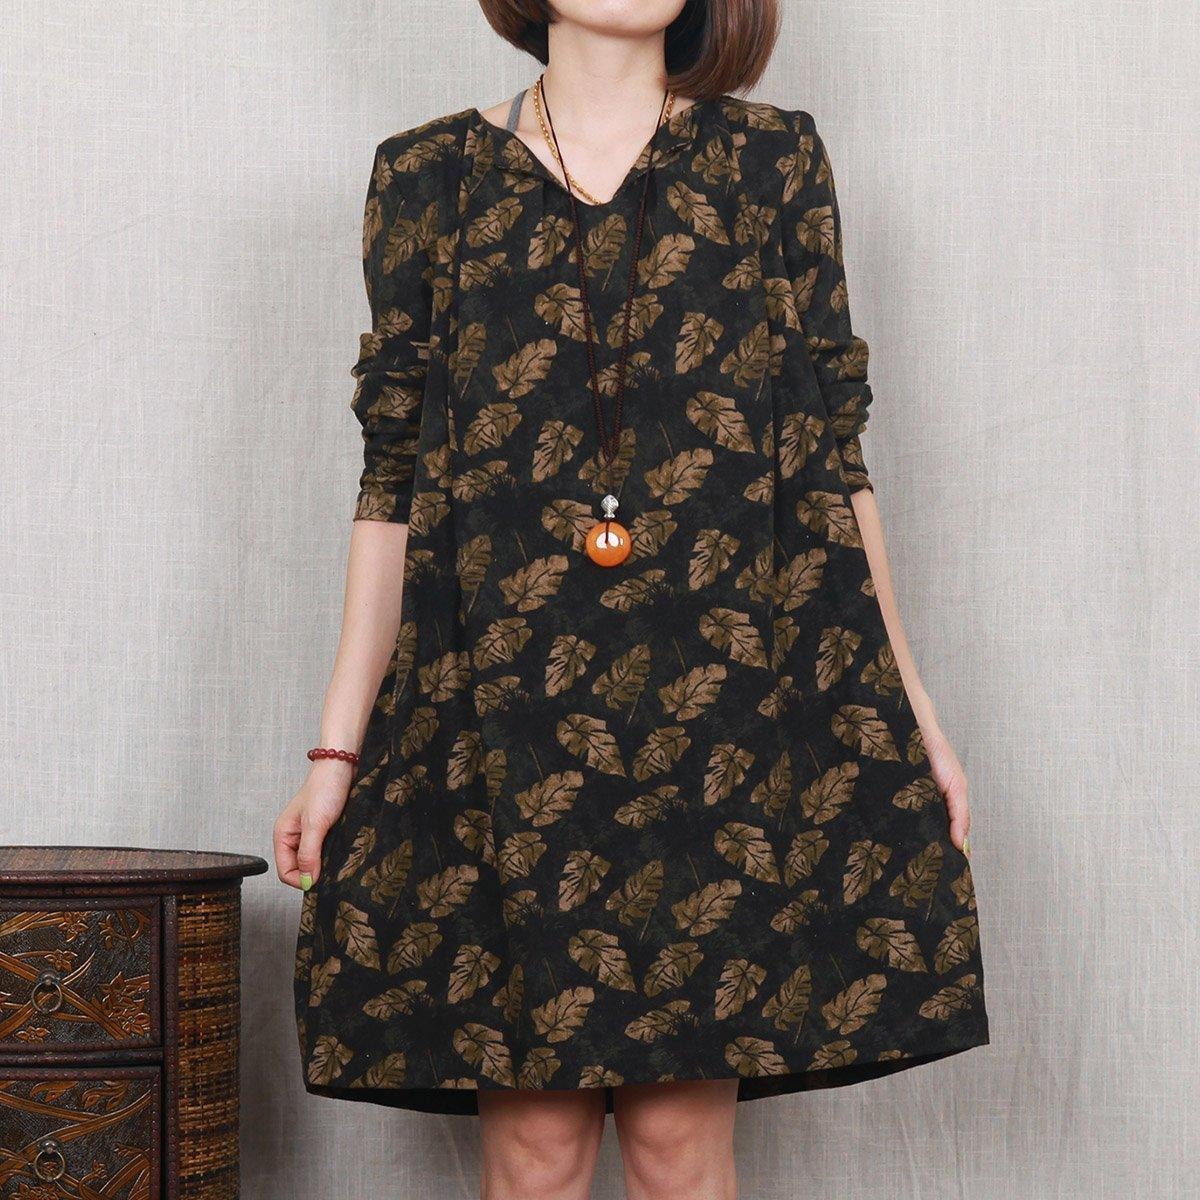 Dark green leaf print floral linen dress plus size spring dress